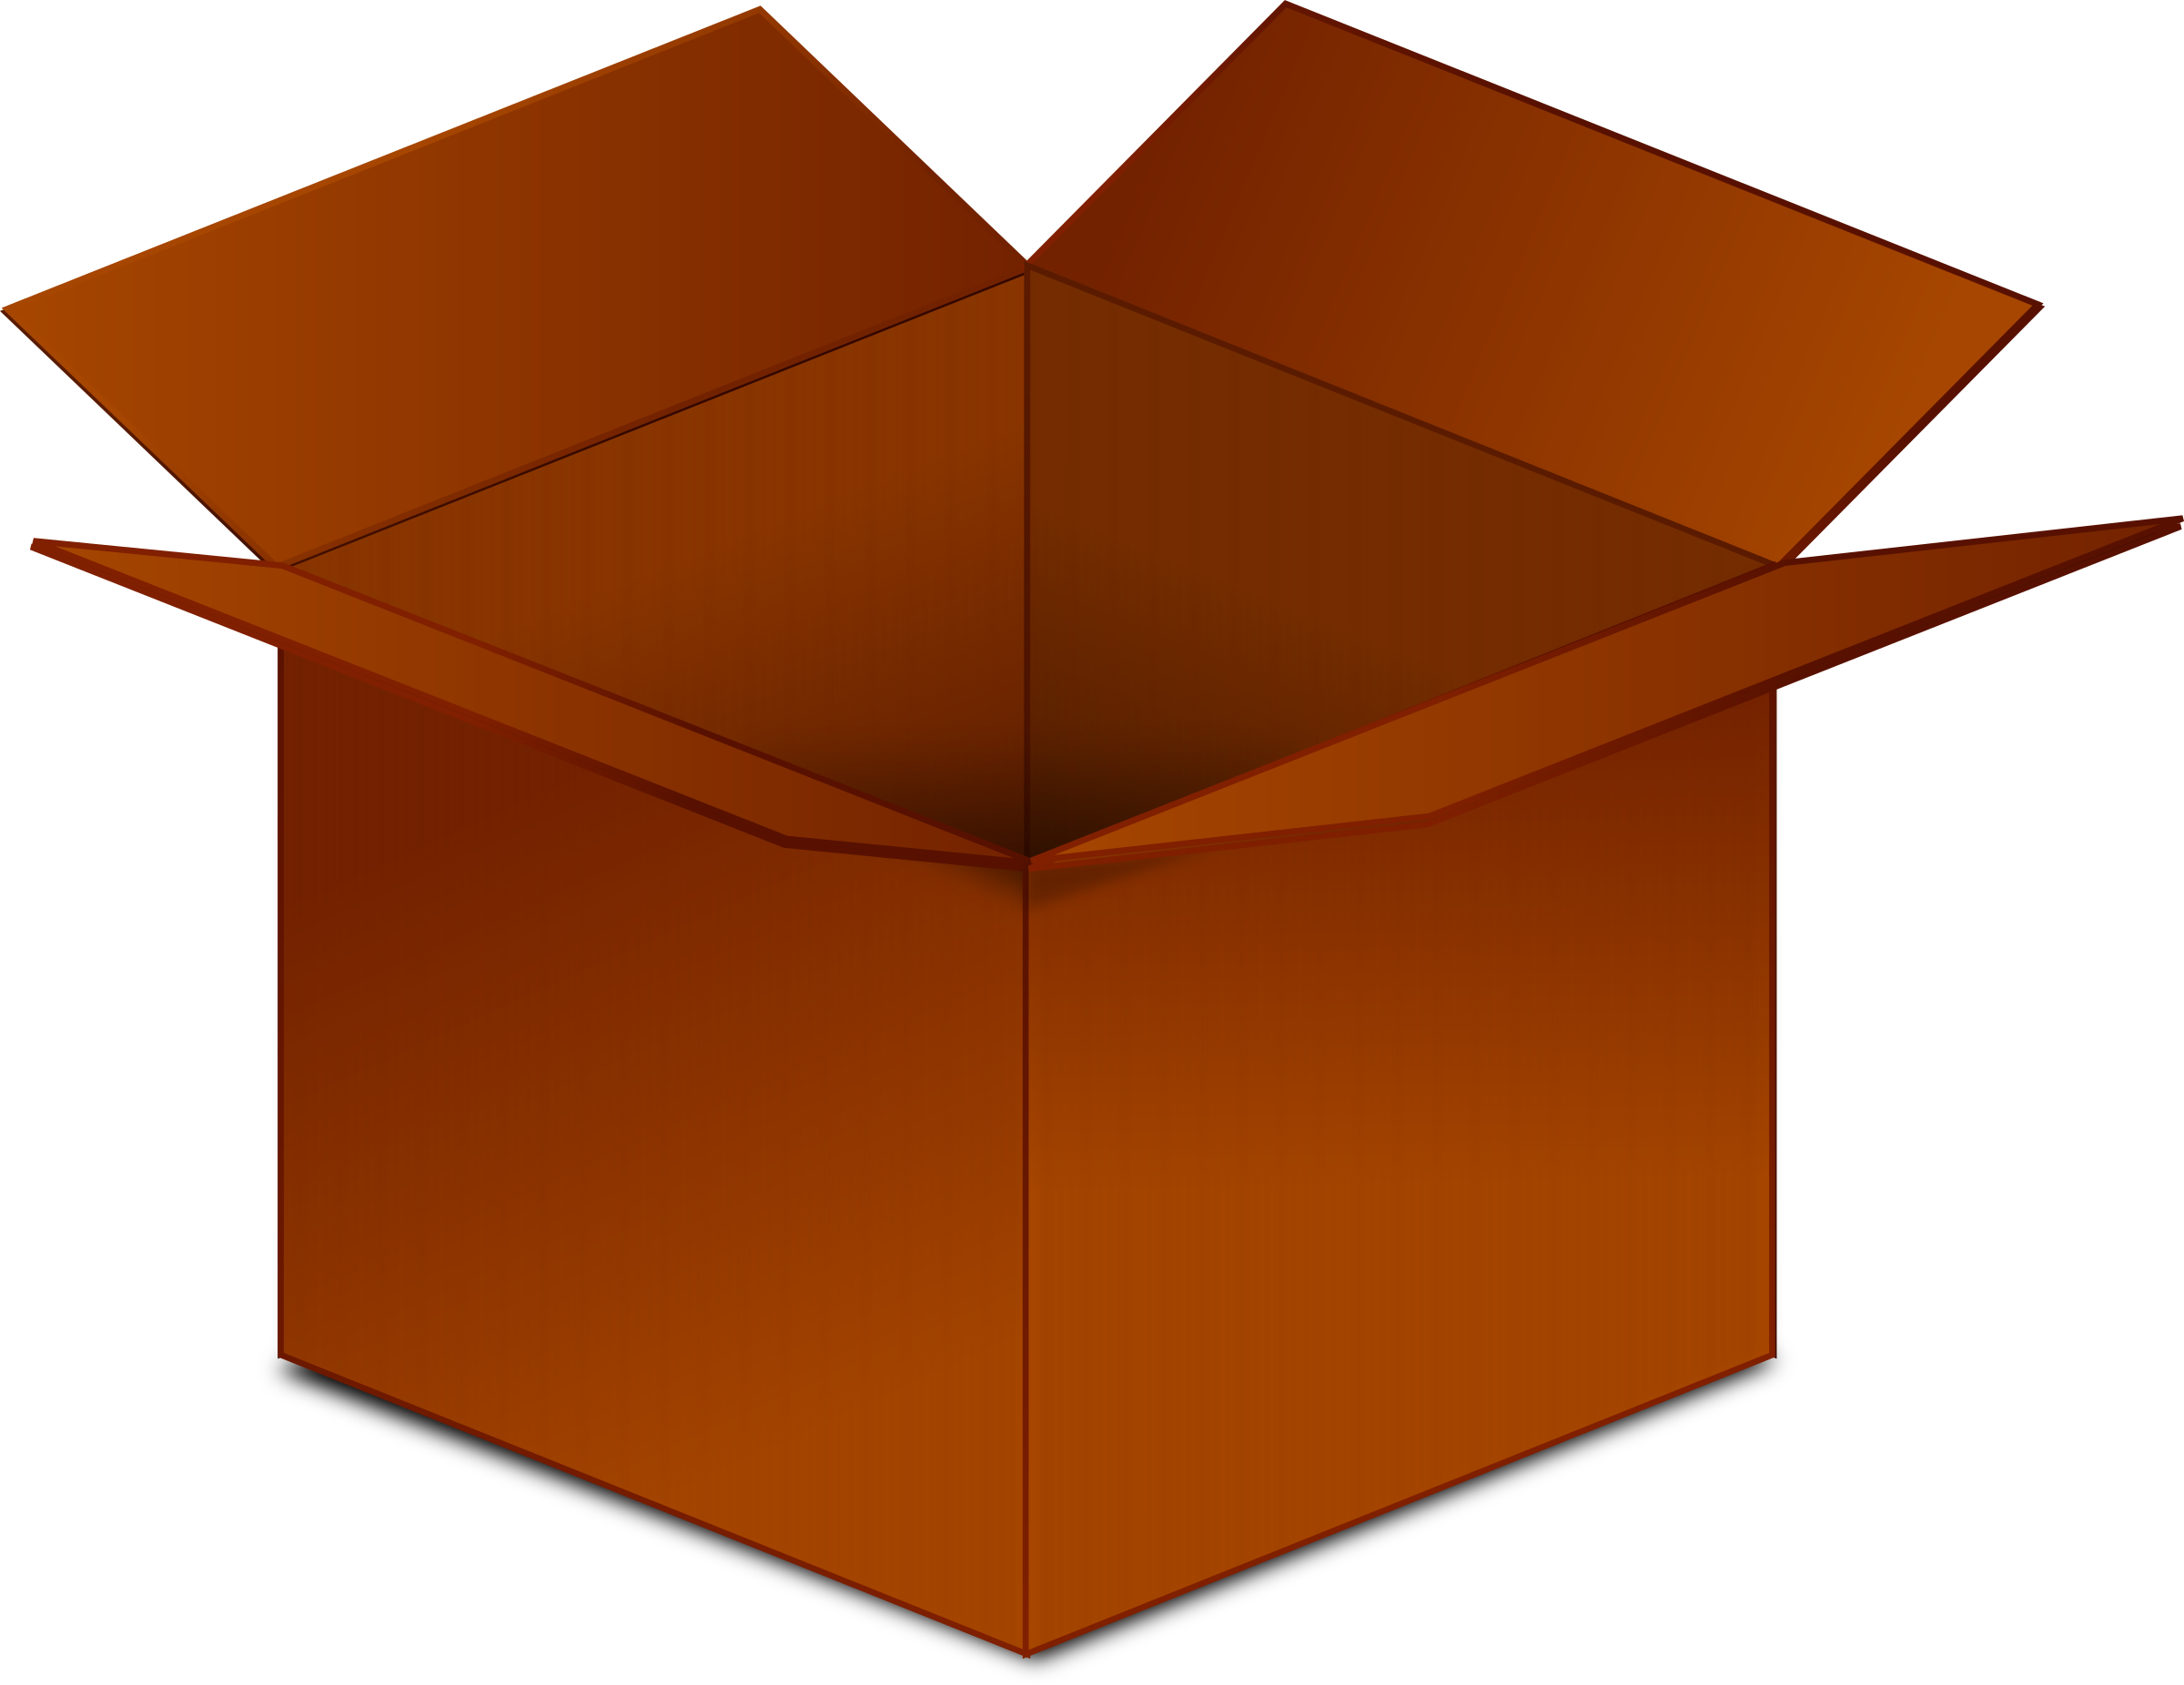 Big image png. Clipart box cartoon